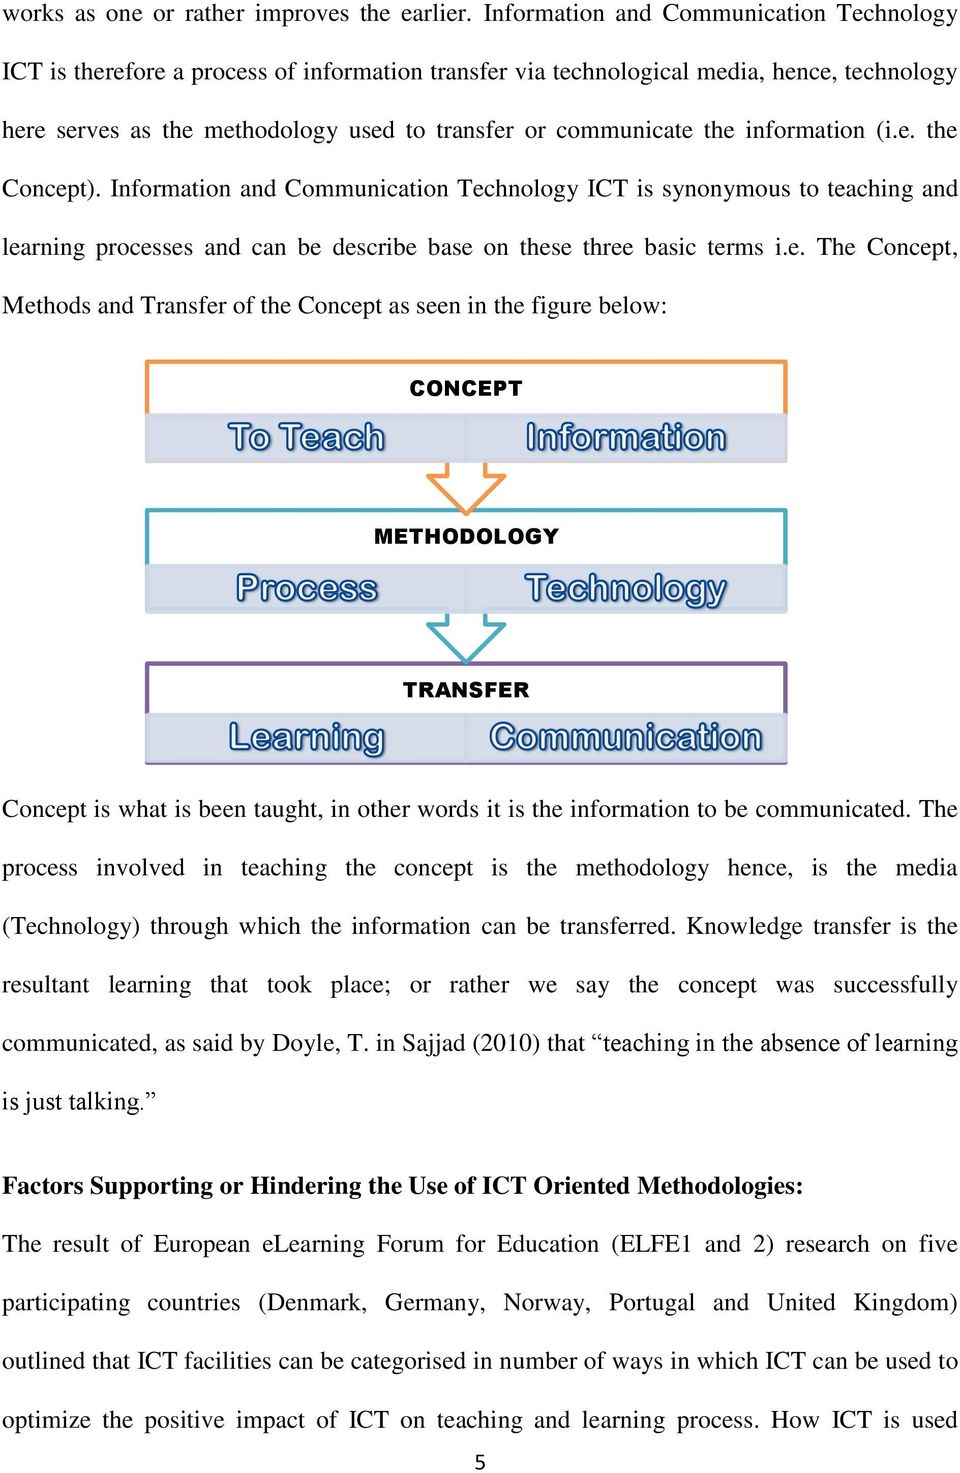 the information (i.e. the Concept). Information and Communication Technology ICT is synonymous to teaching and learning processes and can be describe base on these three basic terms i.e. The Concept, Methods and Transfer of the Concept as seen in the figure below: CONCEPT METHODOLOGY TRANSFER Concept is what is been taught, in other words it is the information to be communicated.